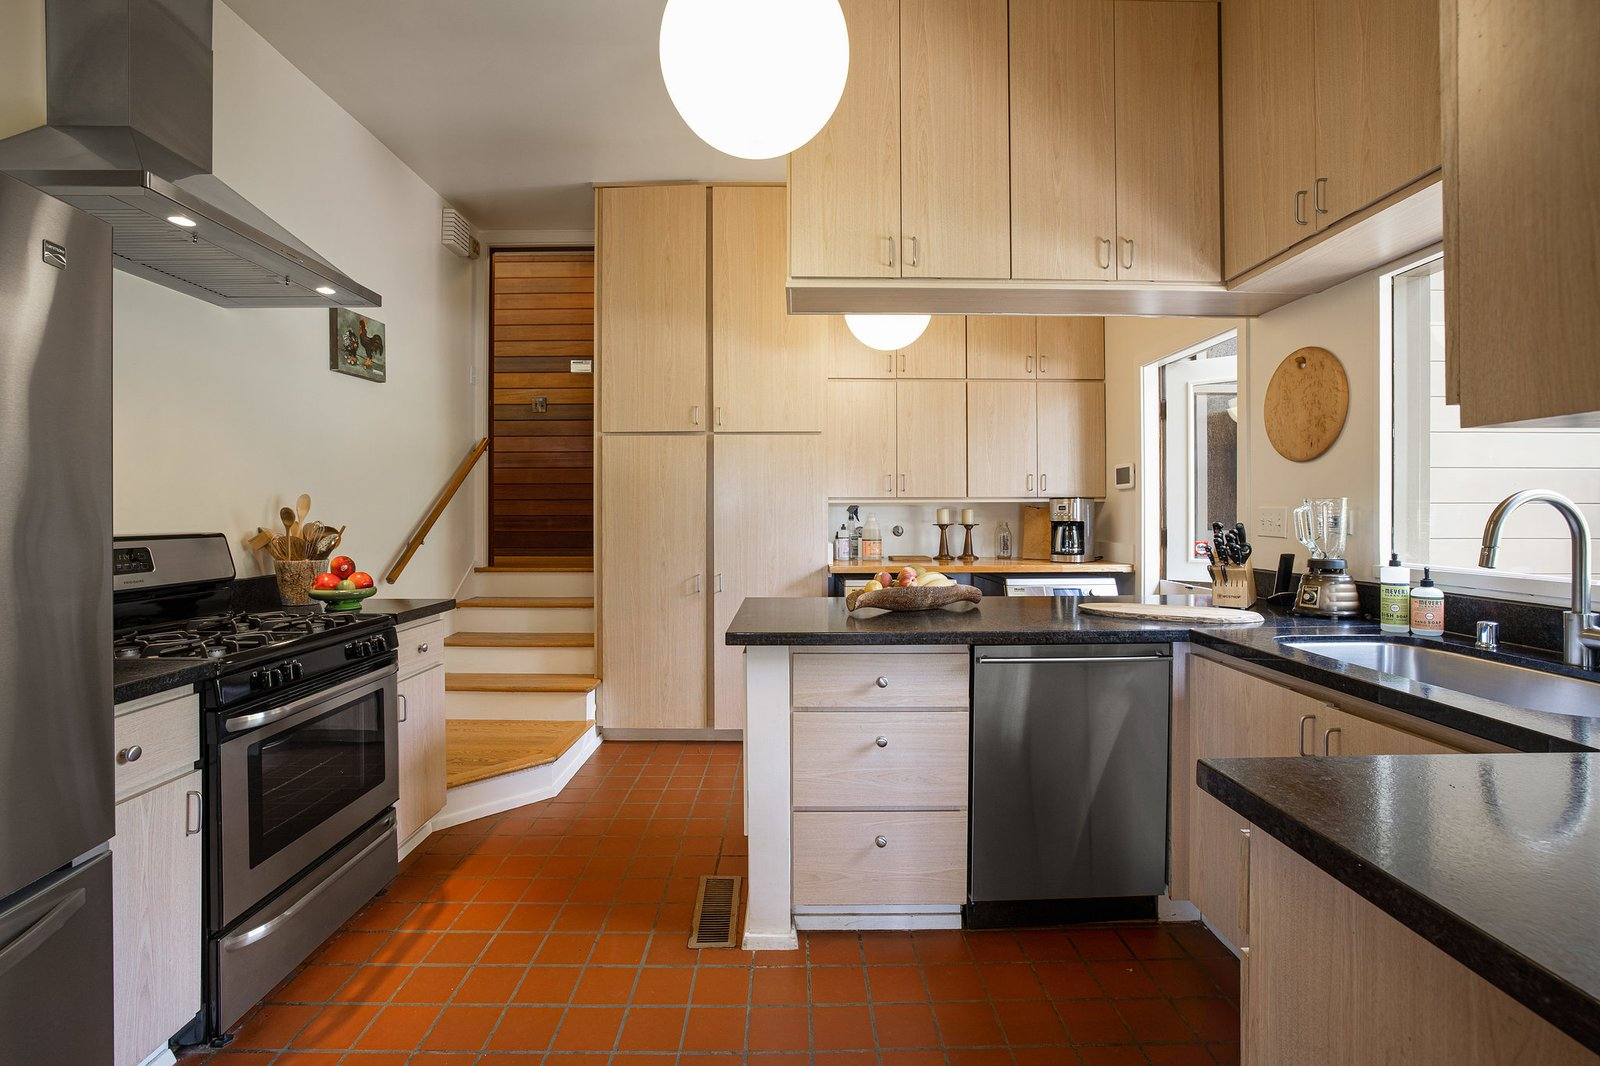 The completely remodeled kitchen boasts new appliances, cabinetry, and finishes. Natural wood cabinets contrast with the original flooring.  Photo 9 of 21 in An Impeccable Midcentury Compound in the Berkeley Hills Wants $3.4M